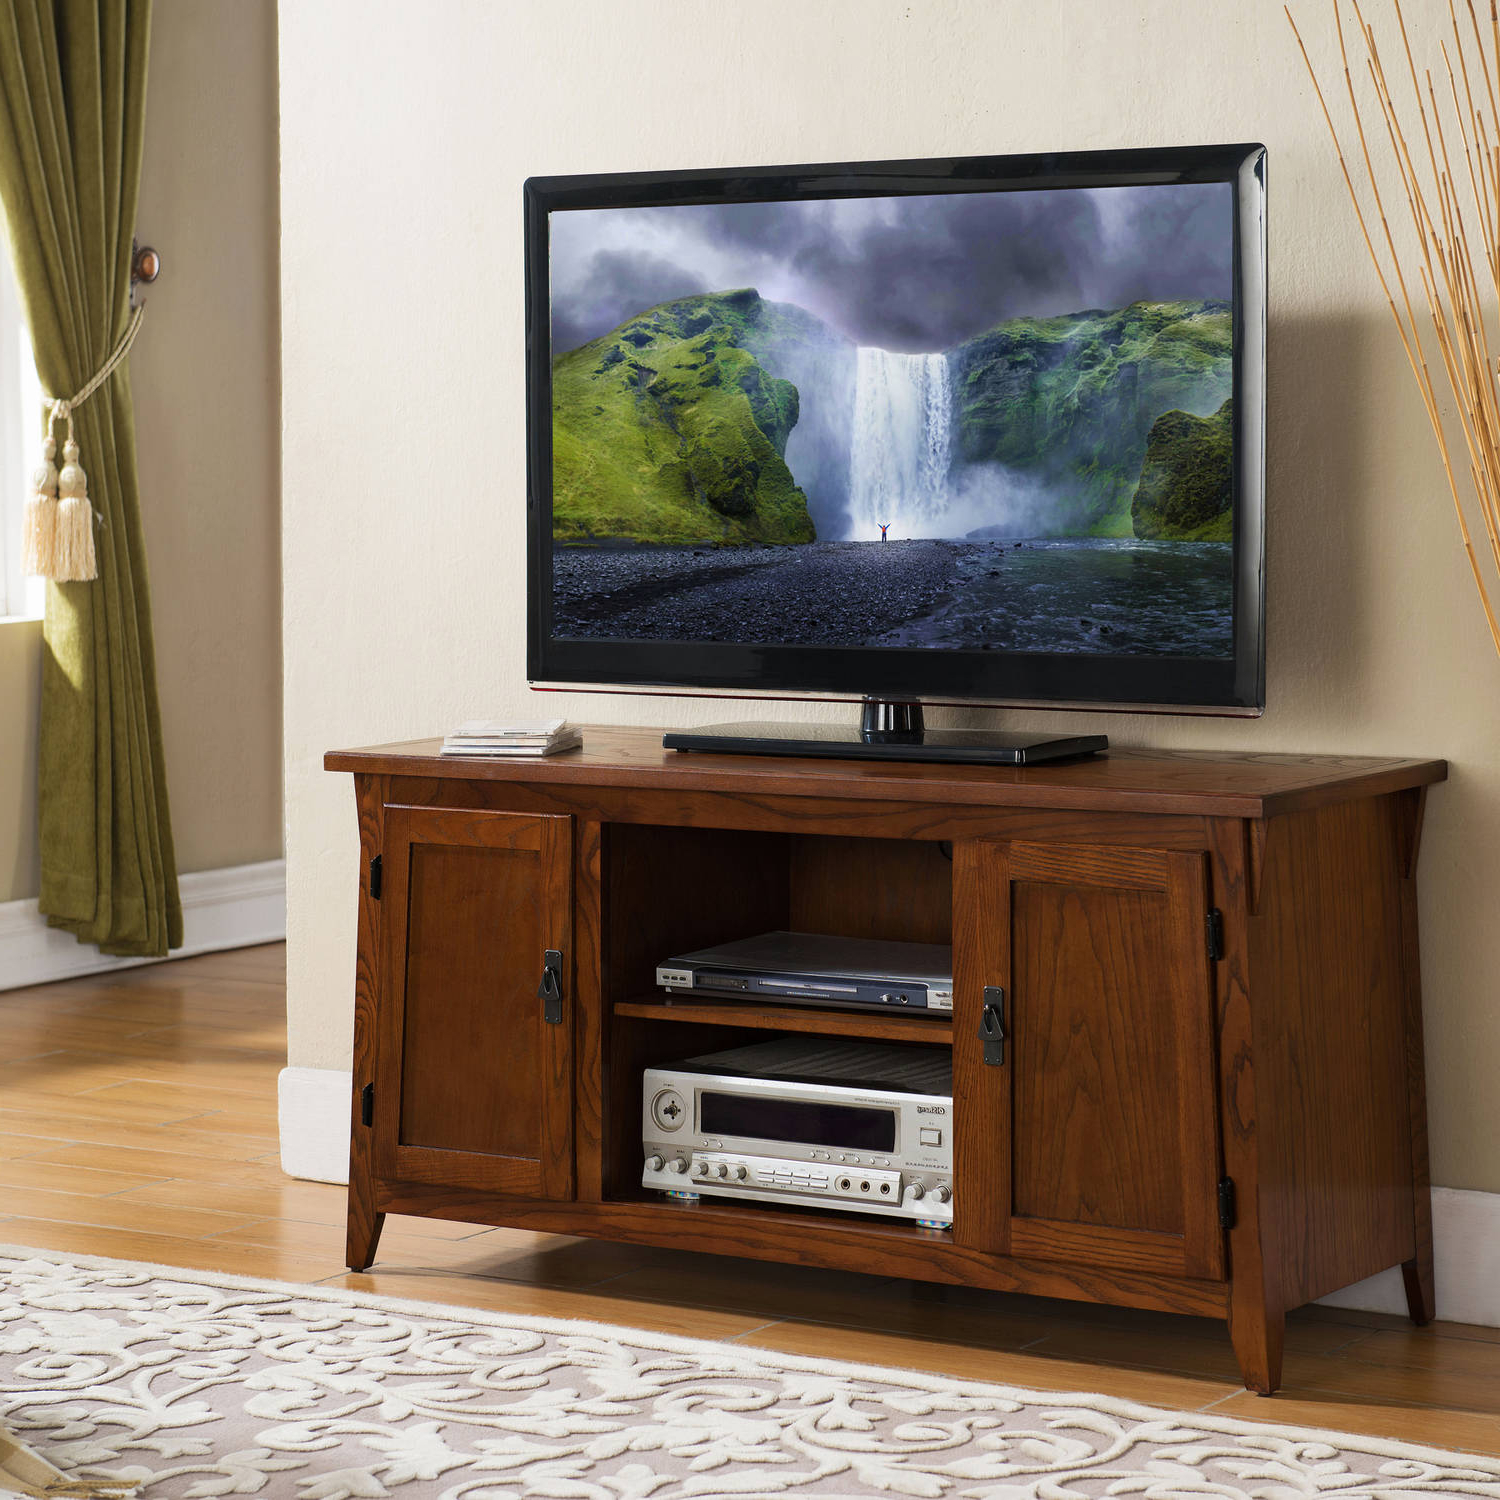 """Most Recent Spellman Tv Stands For Tvs Up To 55"""" Within Leick Home 2 Door 50"""" Tv Stand W/open Component Bay For Tv (View 24 of 25)"""